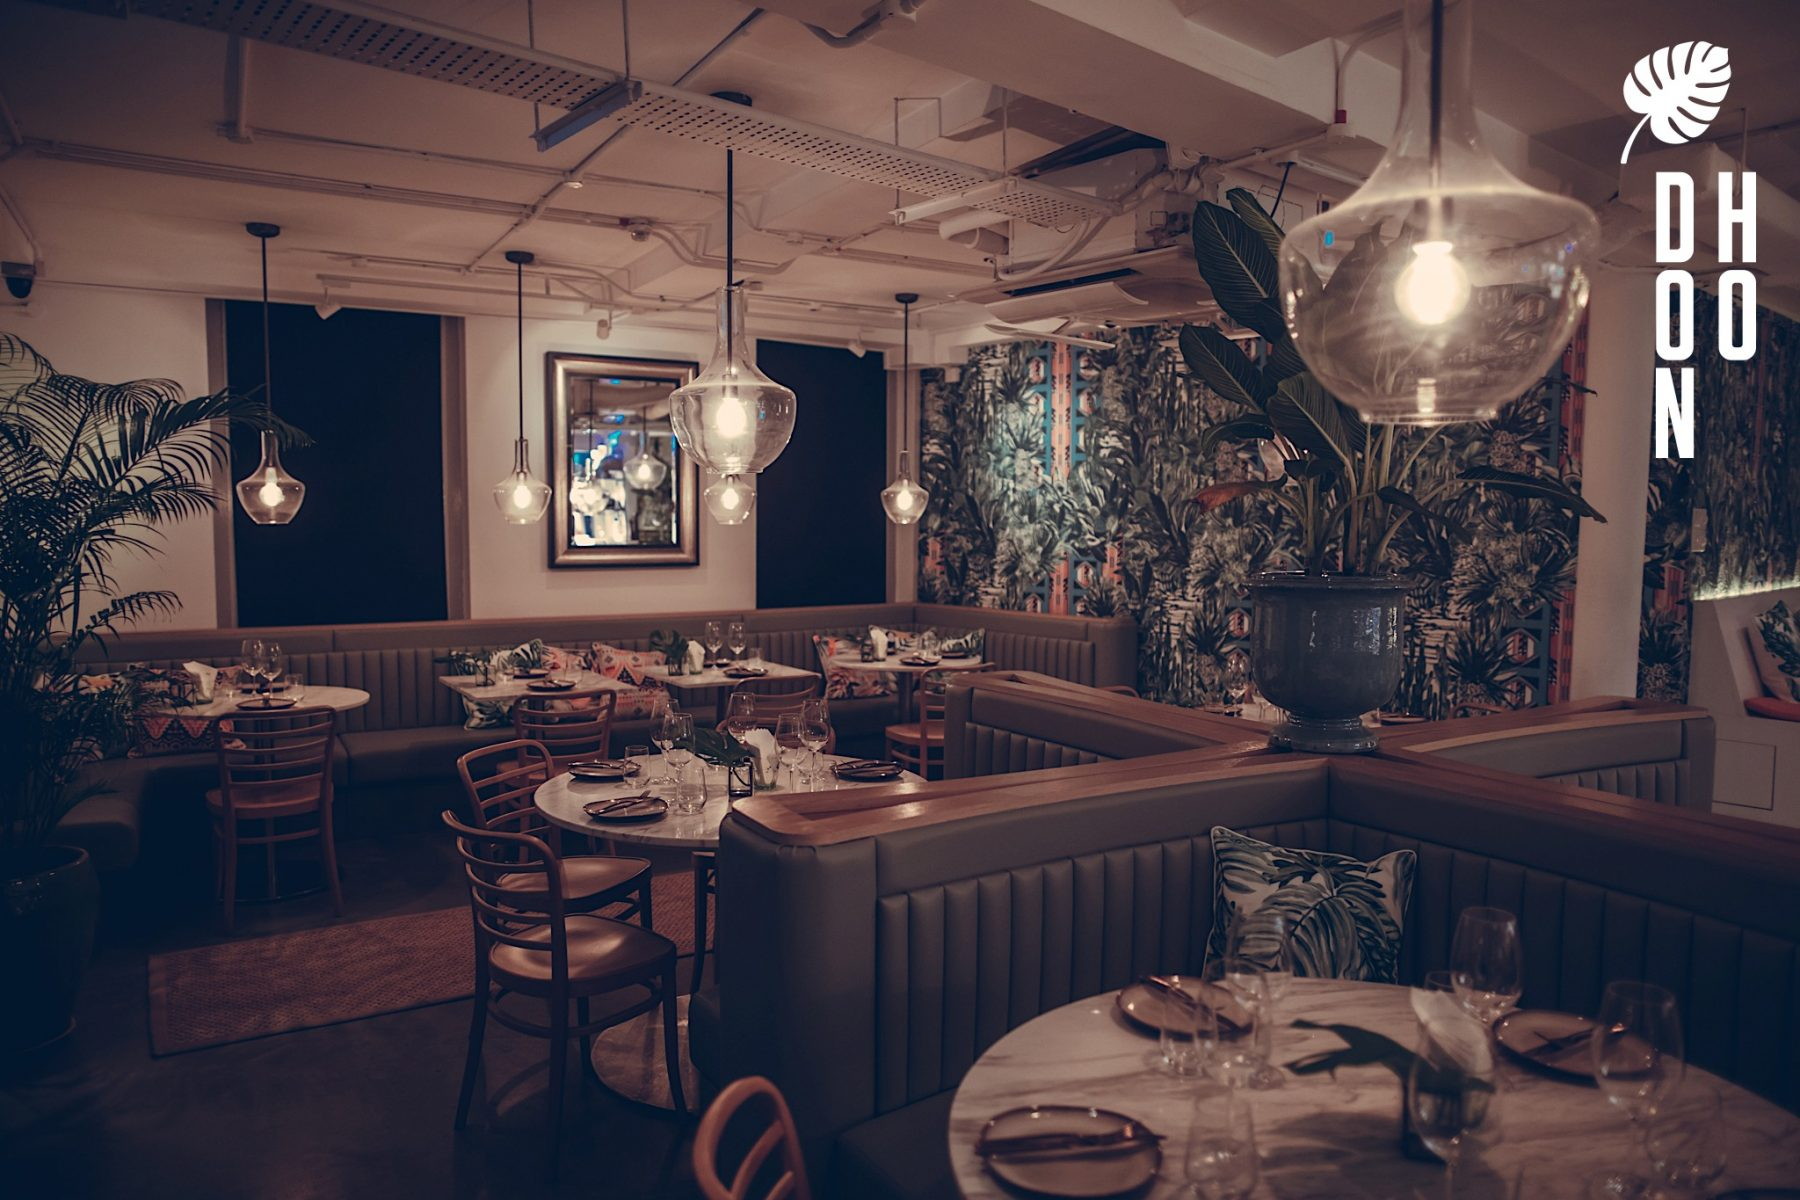 The Great Gatsby: 3 restaurants with best interior decor 6